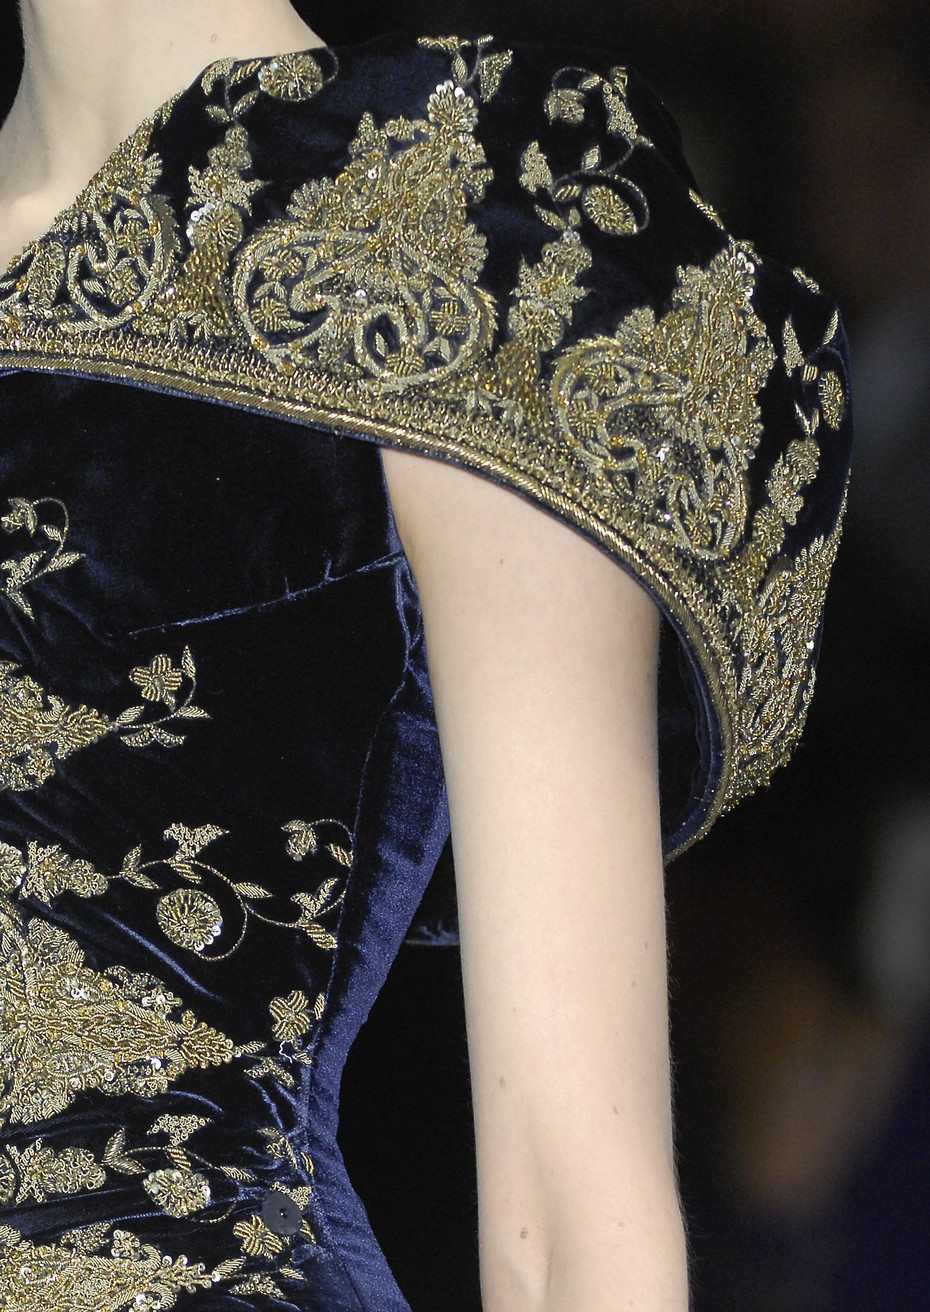 adiakatarina:   Alexander McQueen Autumn/Winter 2008   I miss him :(